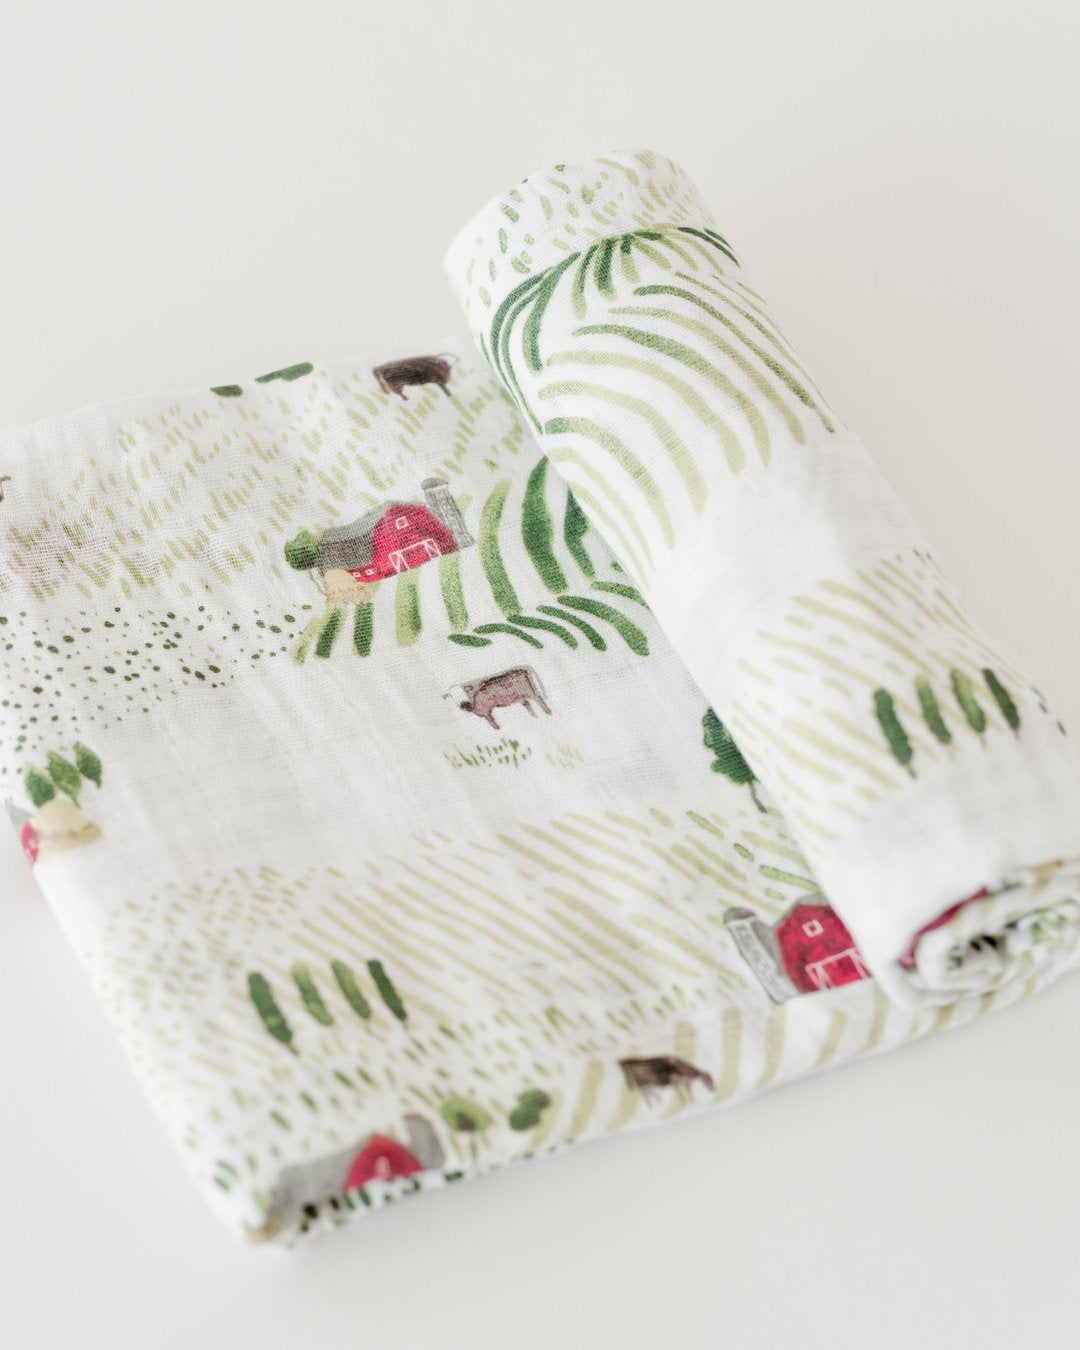 COTTON MUSLIN SWADDLE - ROLLING HILLS - Made by McNamara